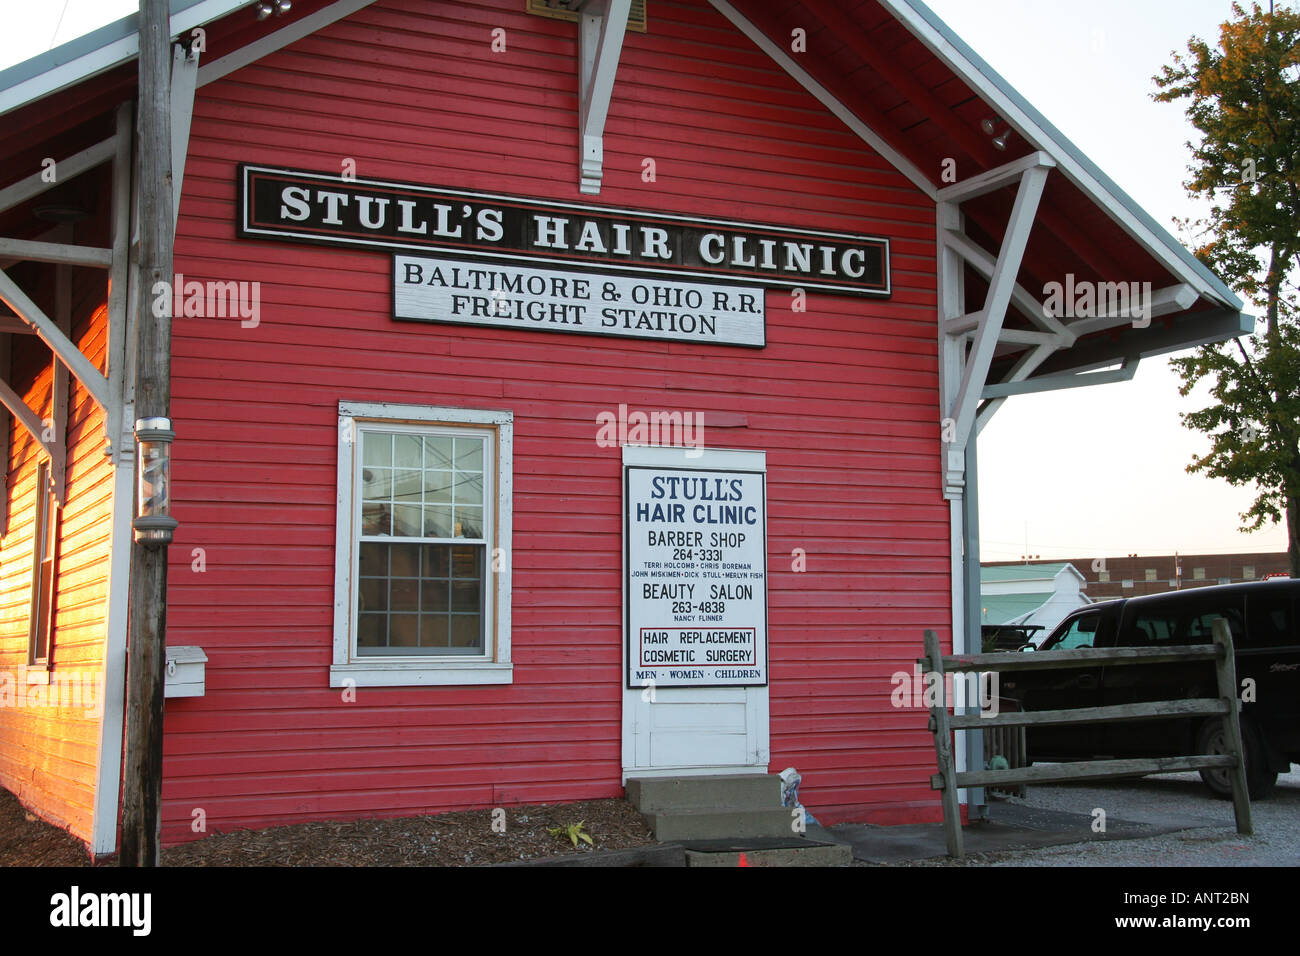 Baltimore and Ohio Rail Road Freight Station Stulls Hair Clinic Wooster Ohio - Stock Image